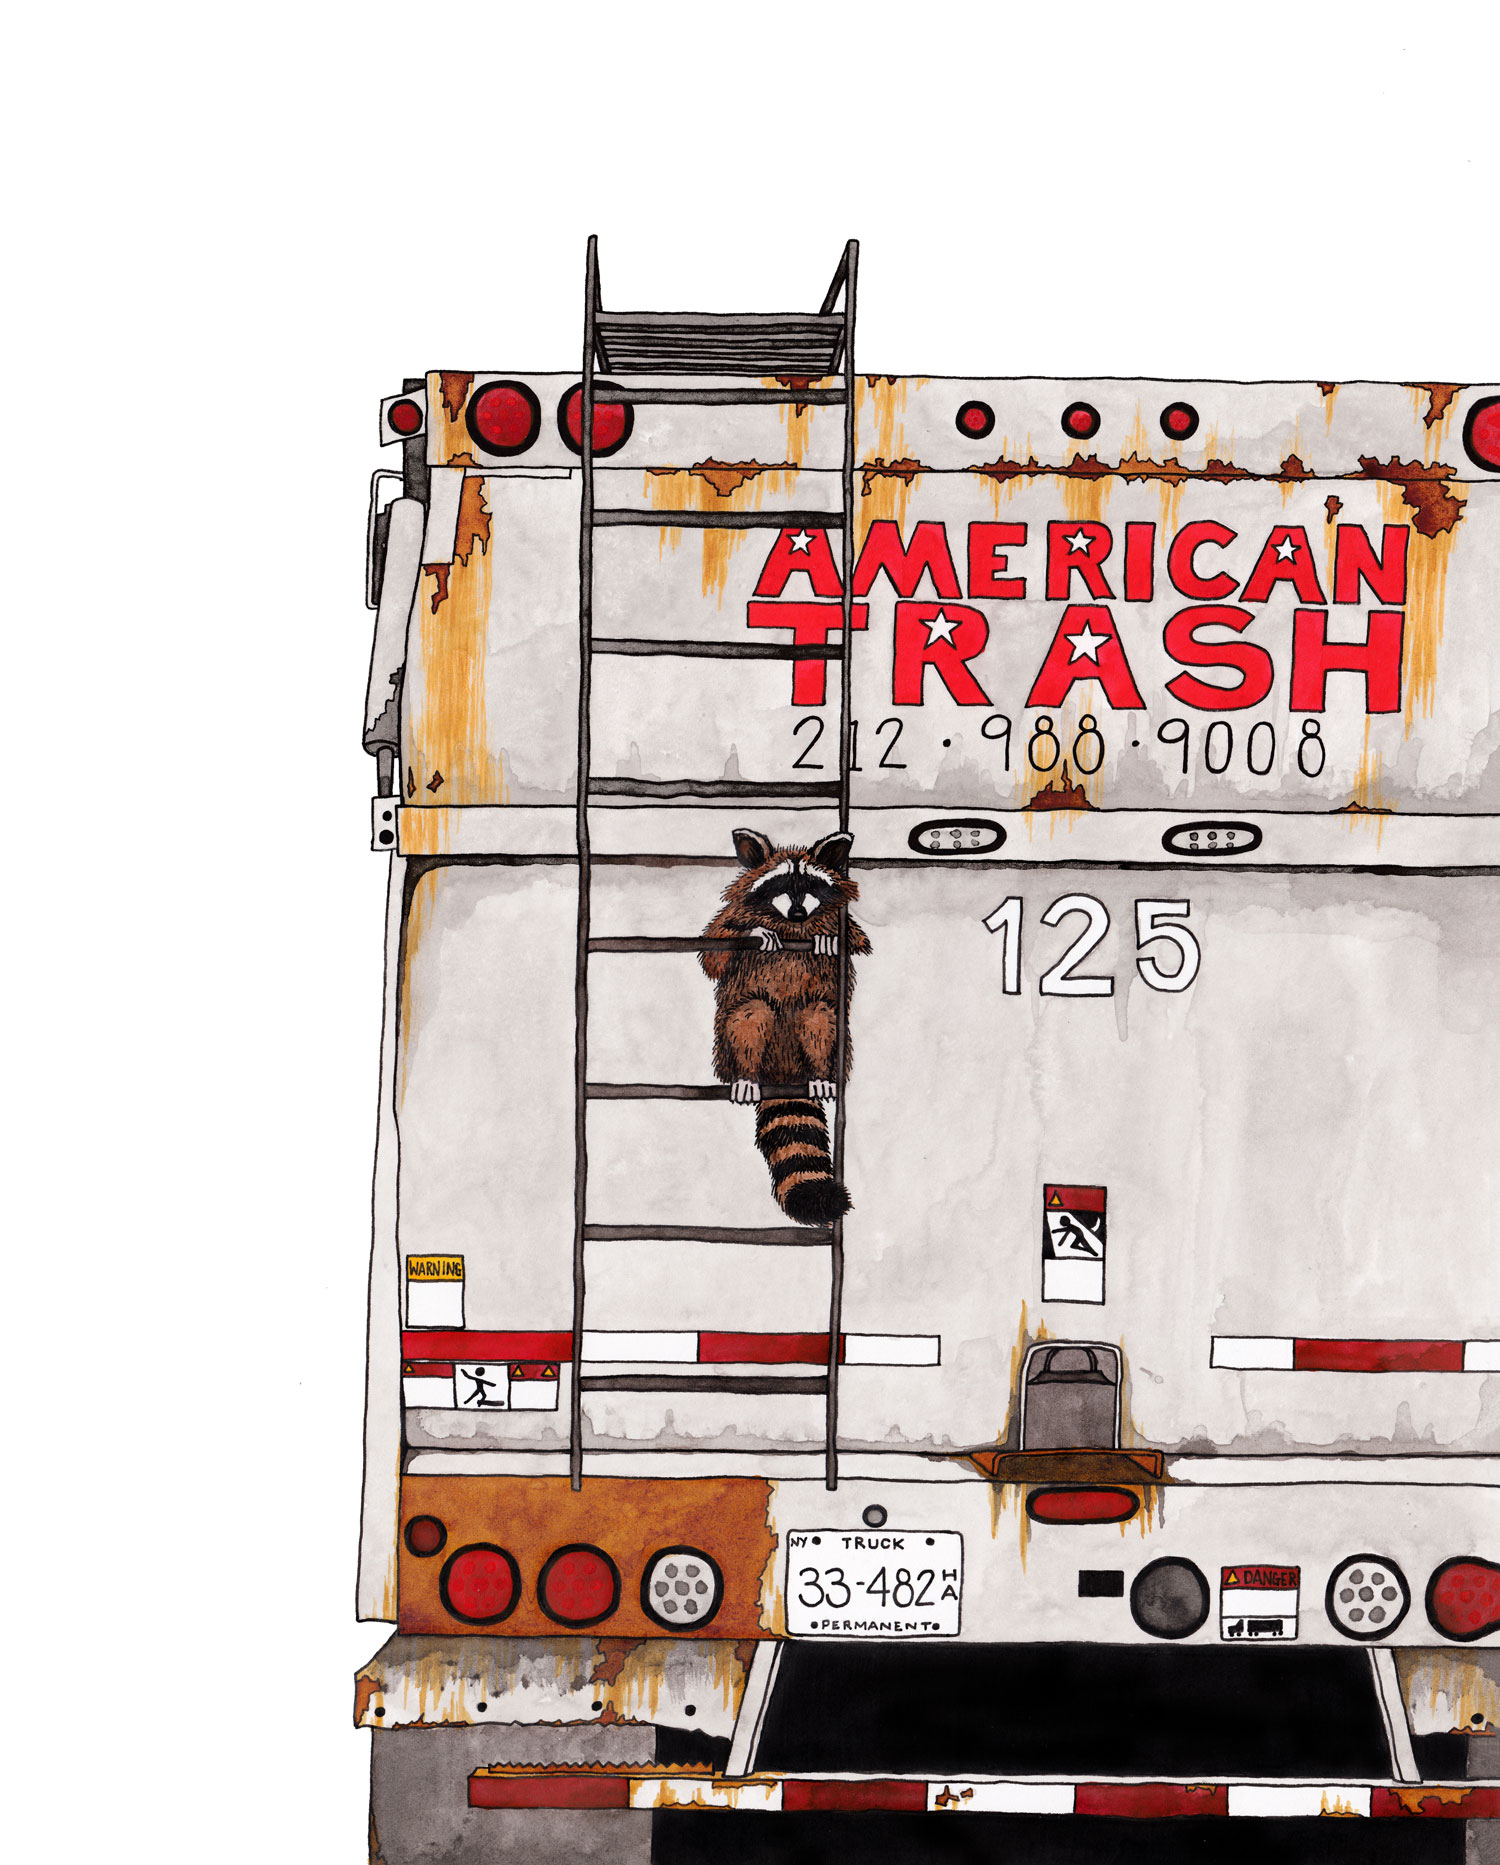 raccoon-american-trash-truck-garbage-illustration-matthew-woods.jpg